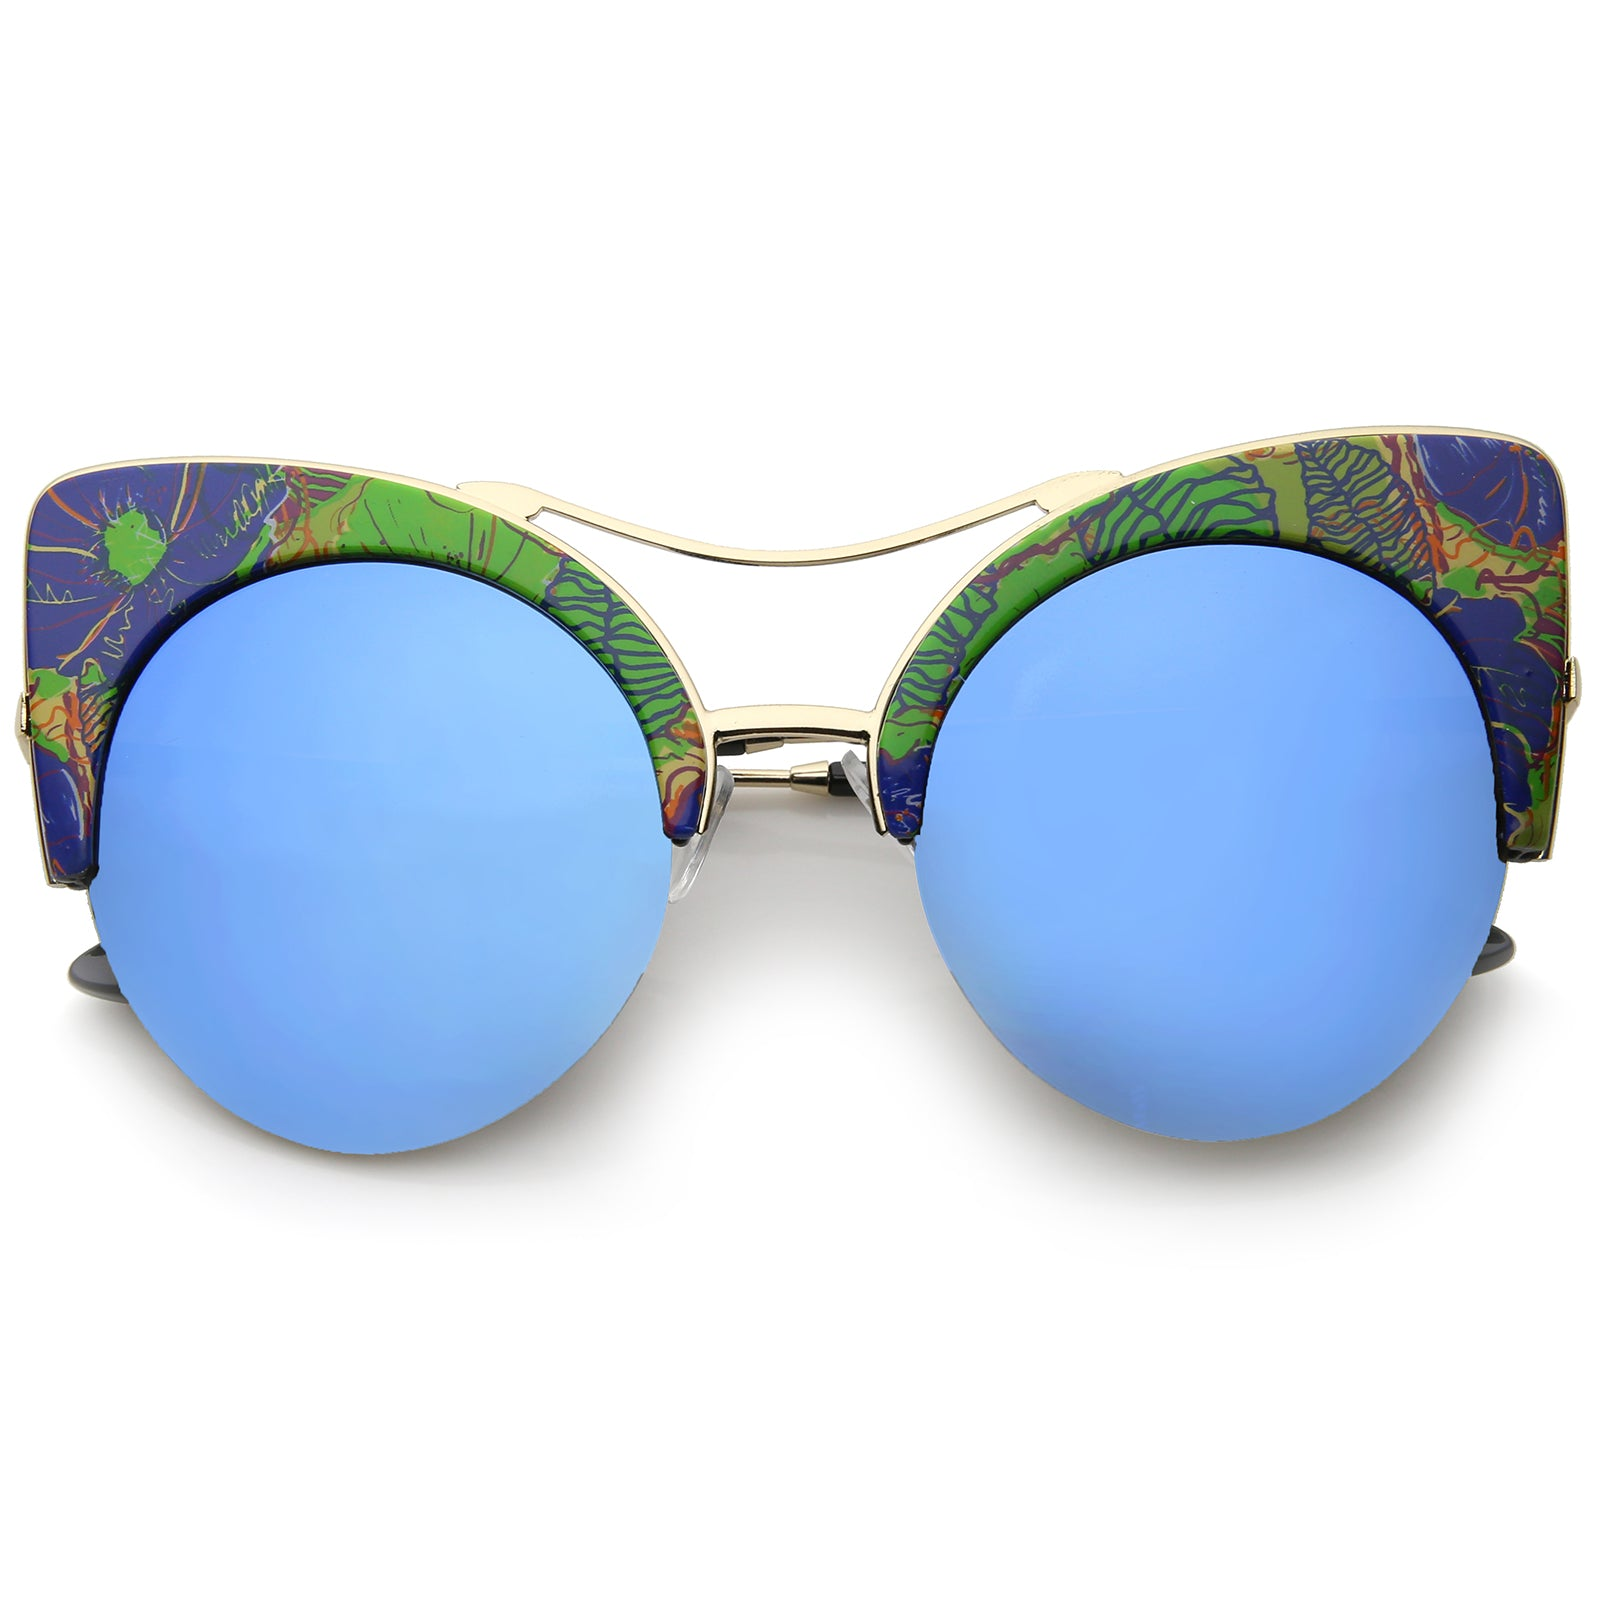 Women's Flat Lens Floral Print Semi-Rimless Round Cat Eye Sunglasses 52mm - sunglass.la - 6